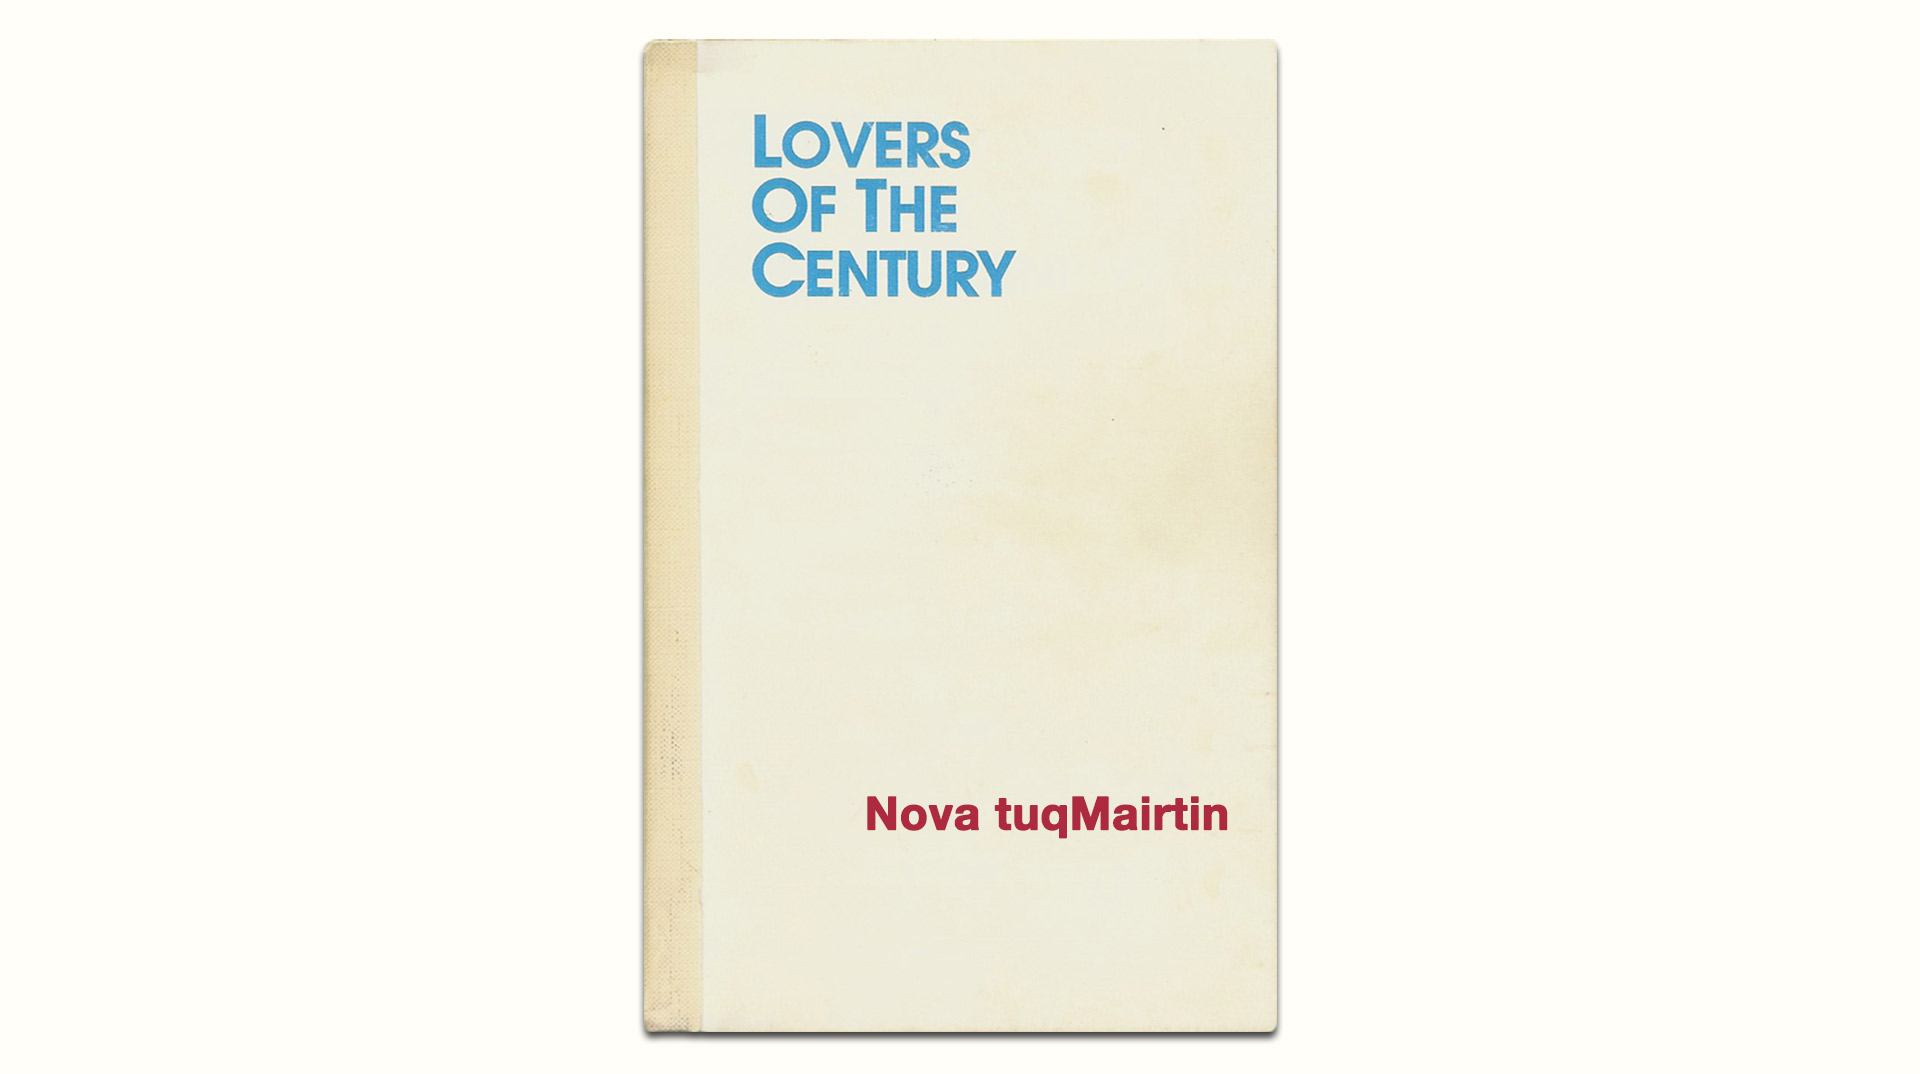 Lovers Of The Century original book